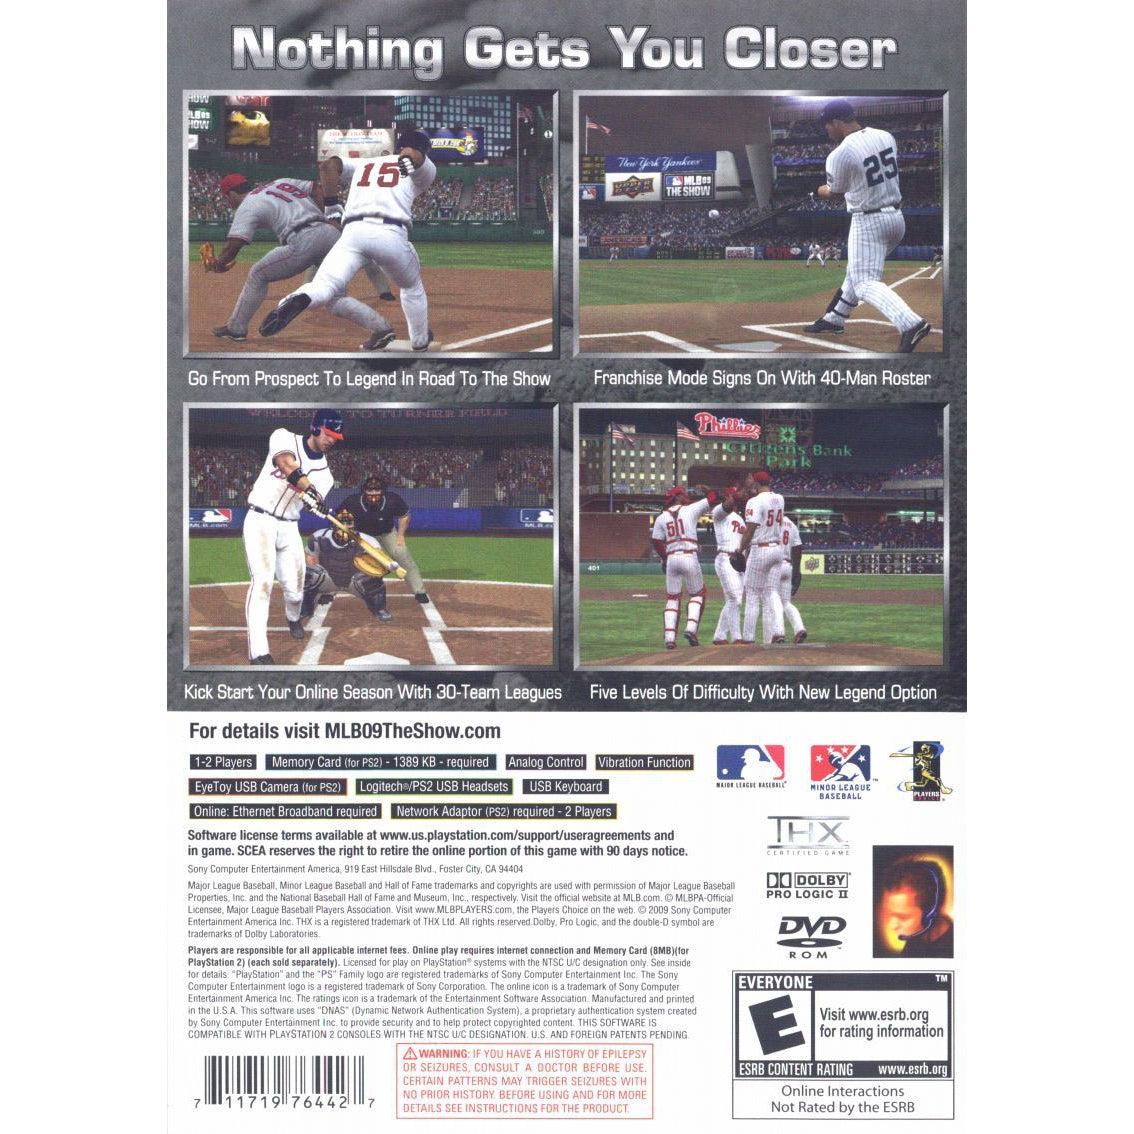 MLB 09: The Show - PlayStation 2 (PS2) Game Complete - YourGamingShop.com - Buy, Sell, Trade Video Games Online. 120 Day Warranty. Satisfaction Guaranteed.